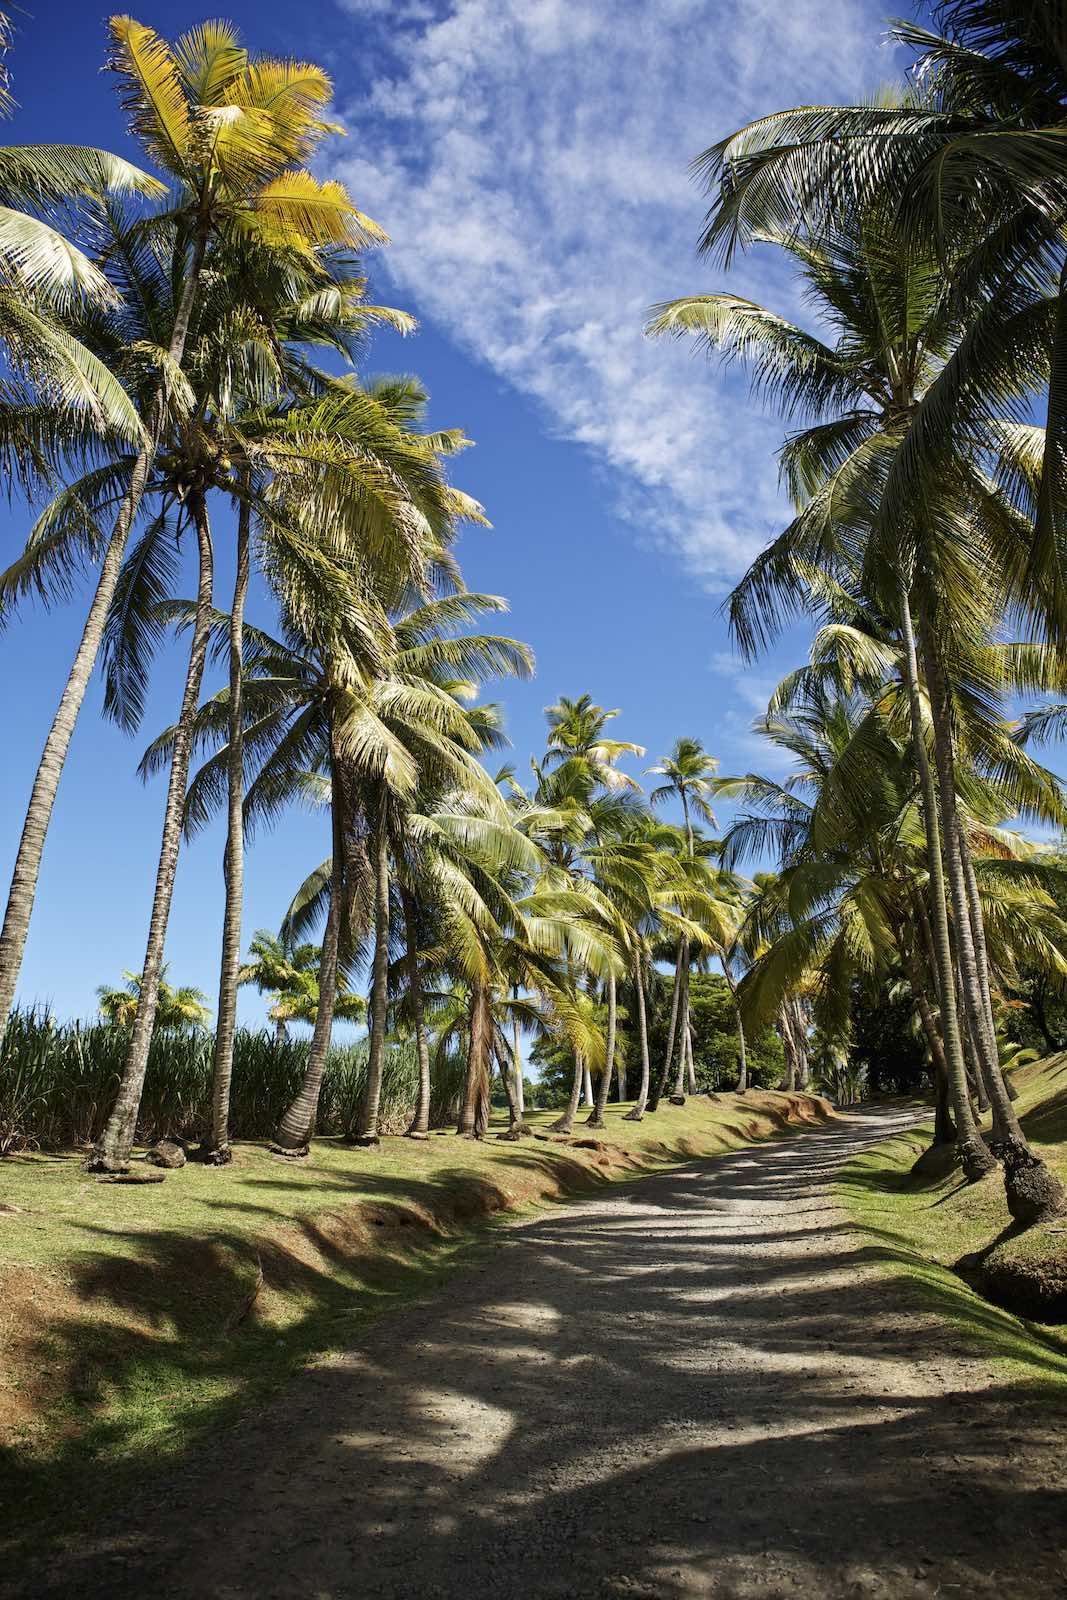 A sunny, dirt road lined with towering palm trees.